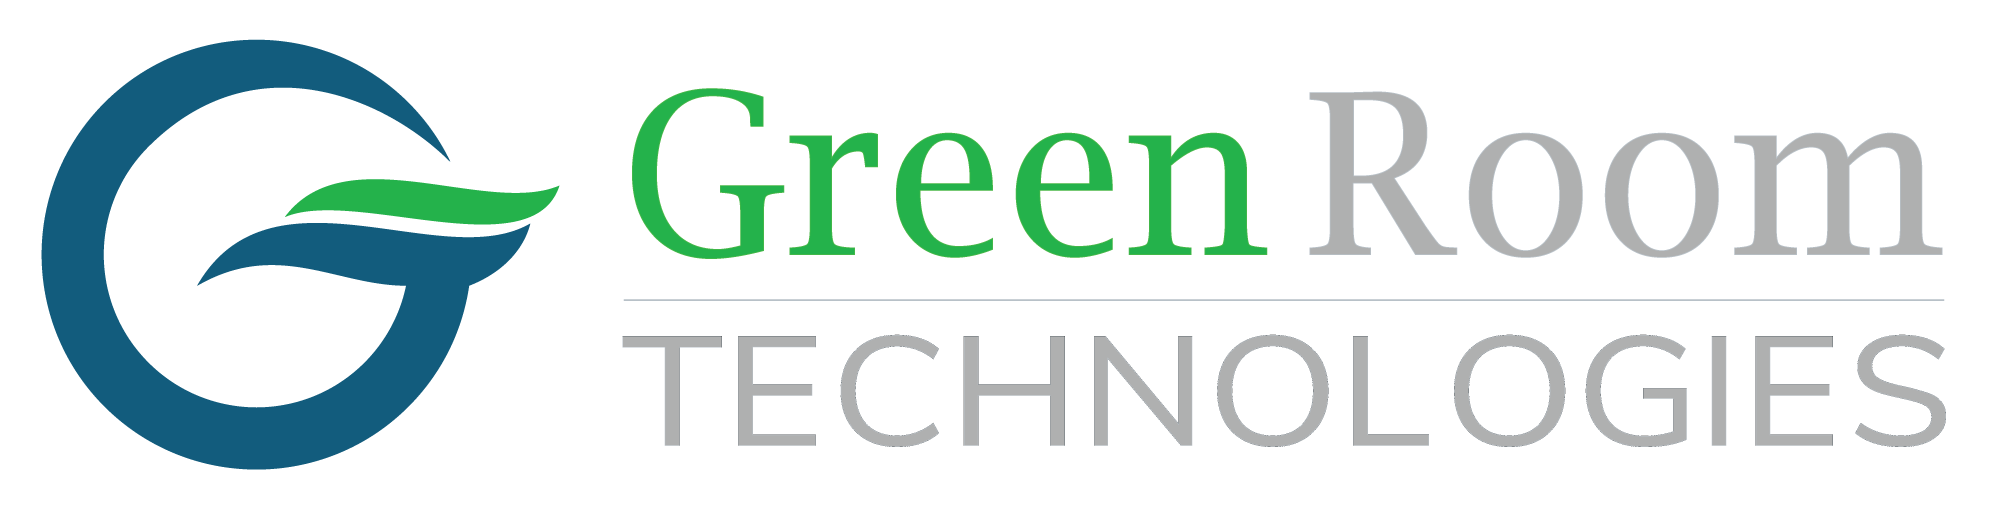 logo-greenroomtx-long-gry.png